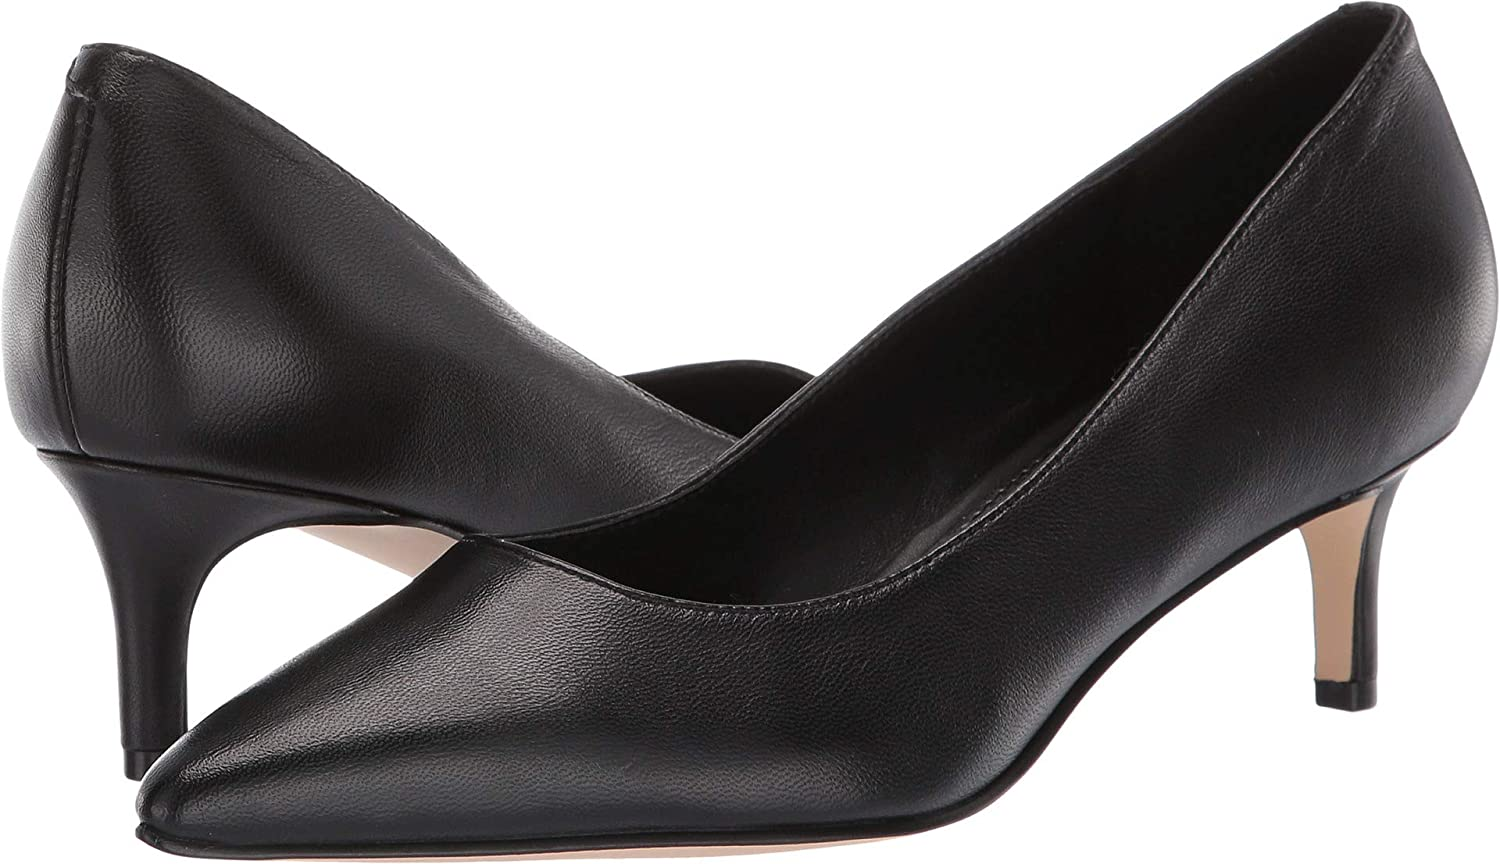 Nine West Woherren Fina Pump 3b6f4wult7554 Pumps westen